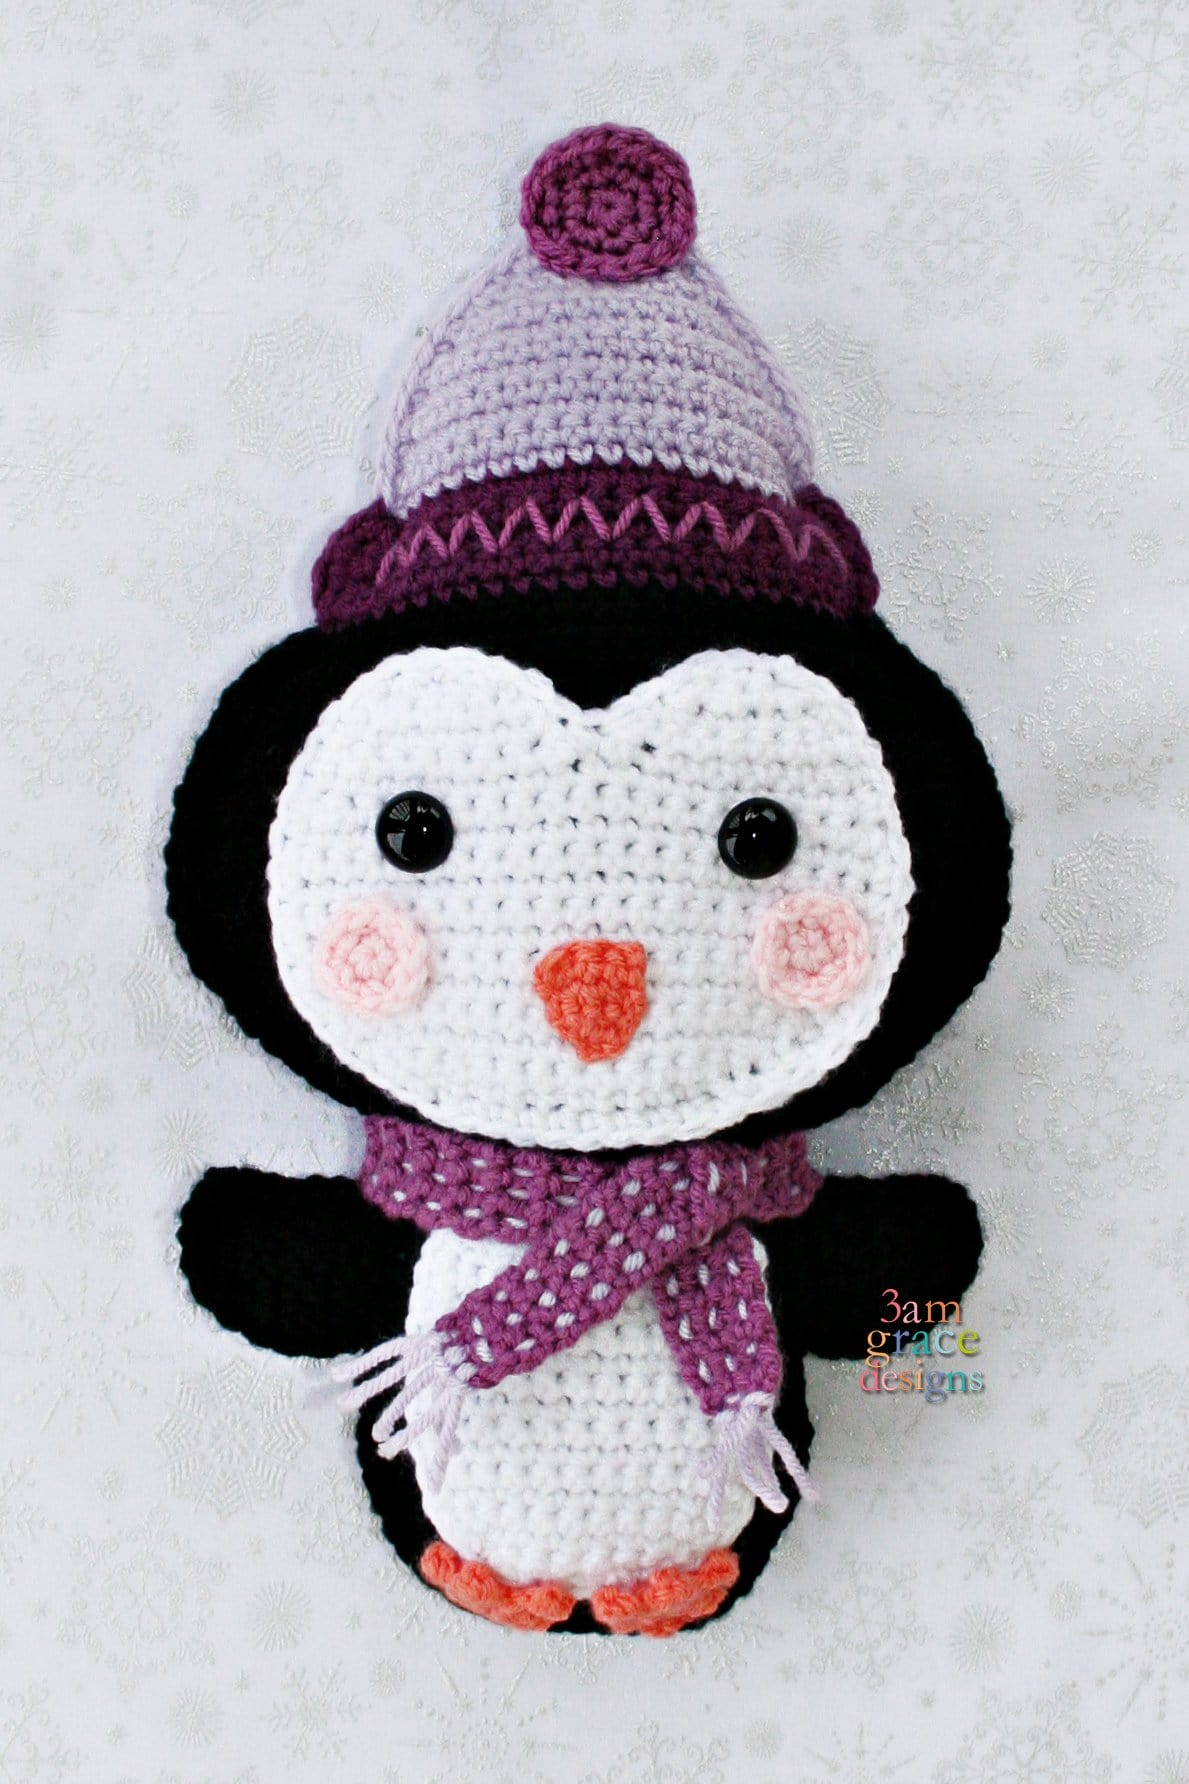 Penguin Kawaii Cuddler™ Crochet Pattern